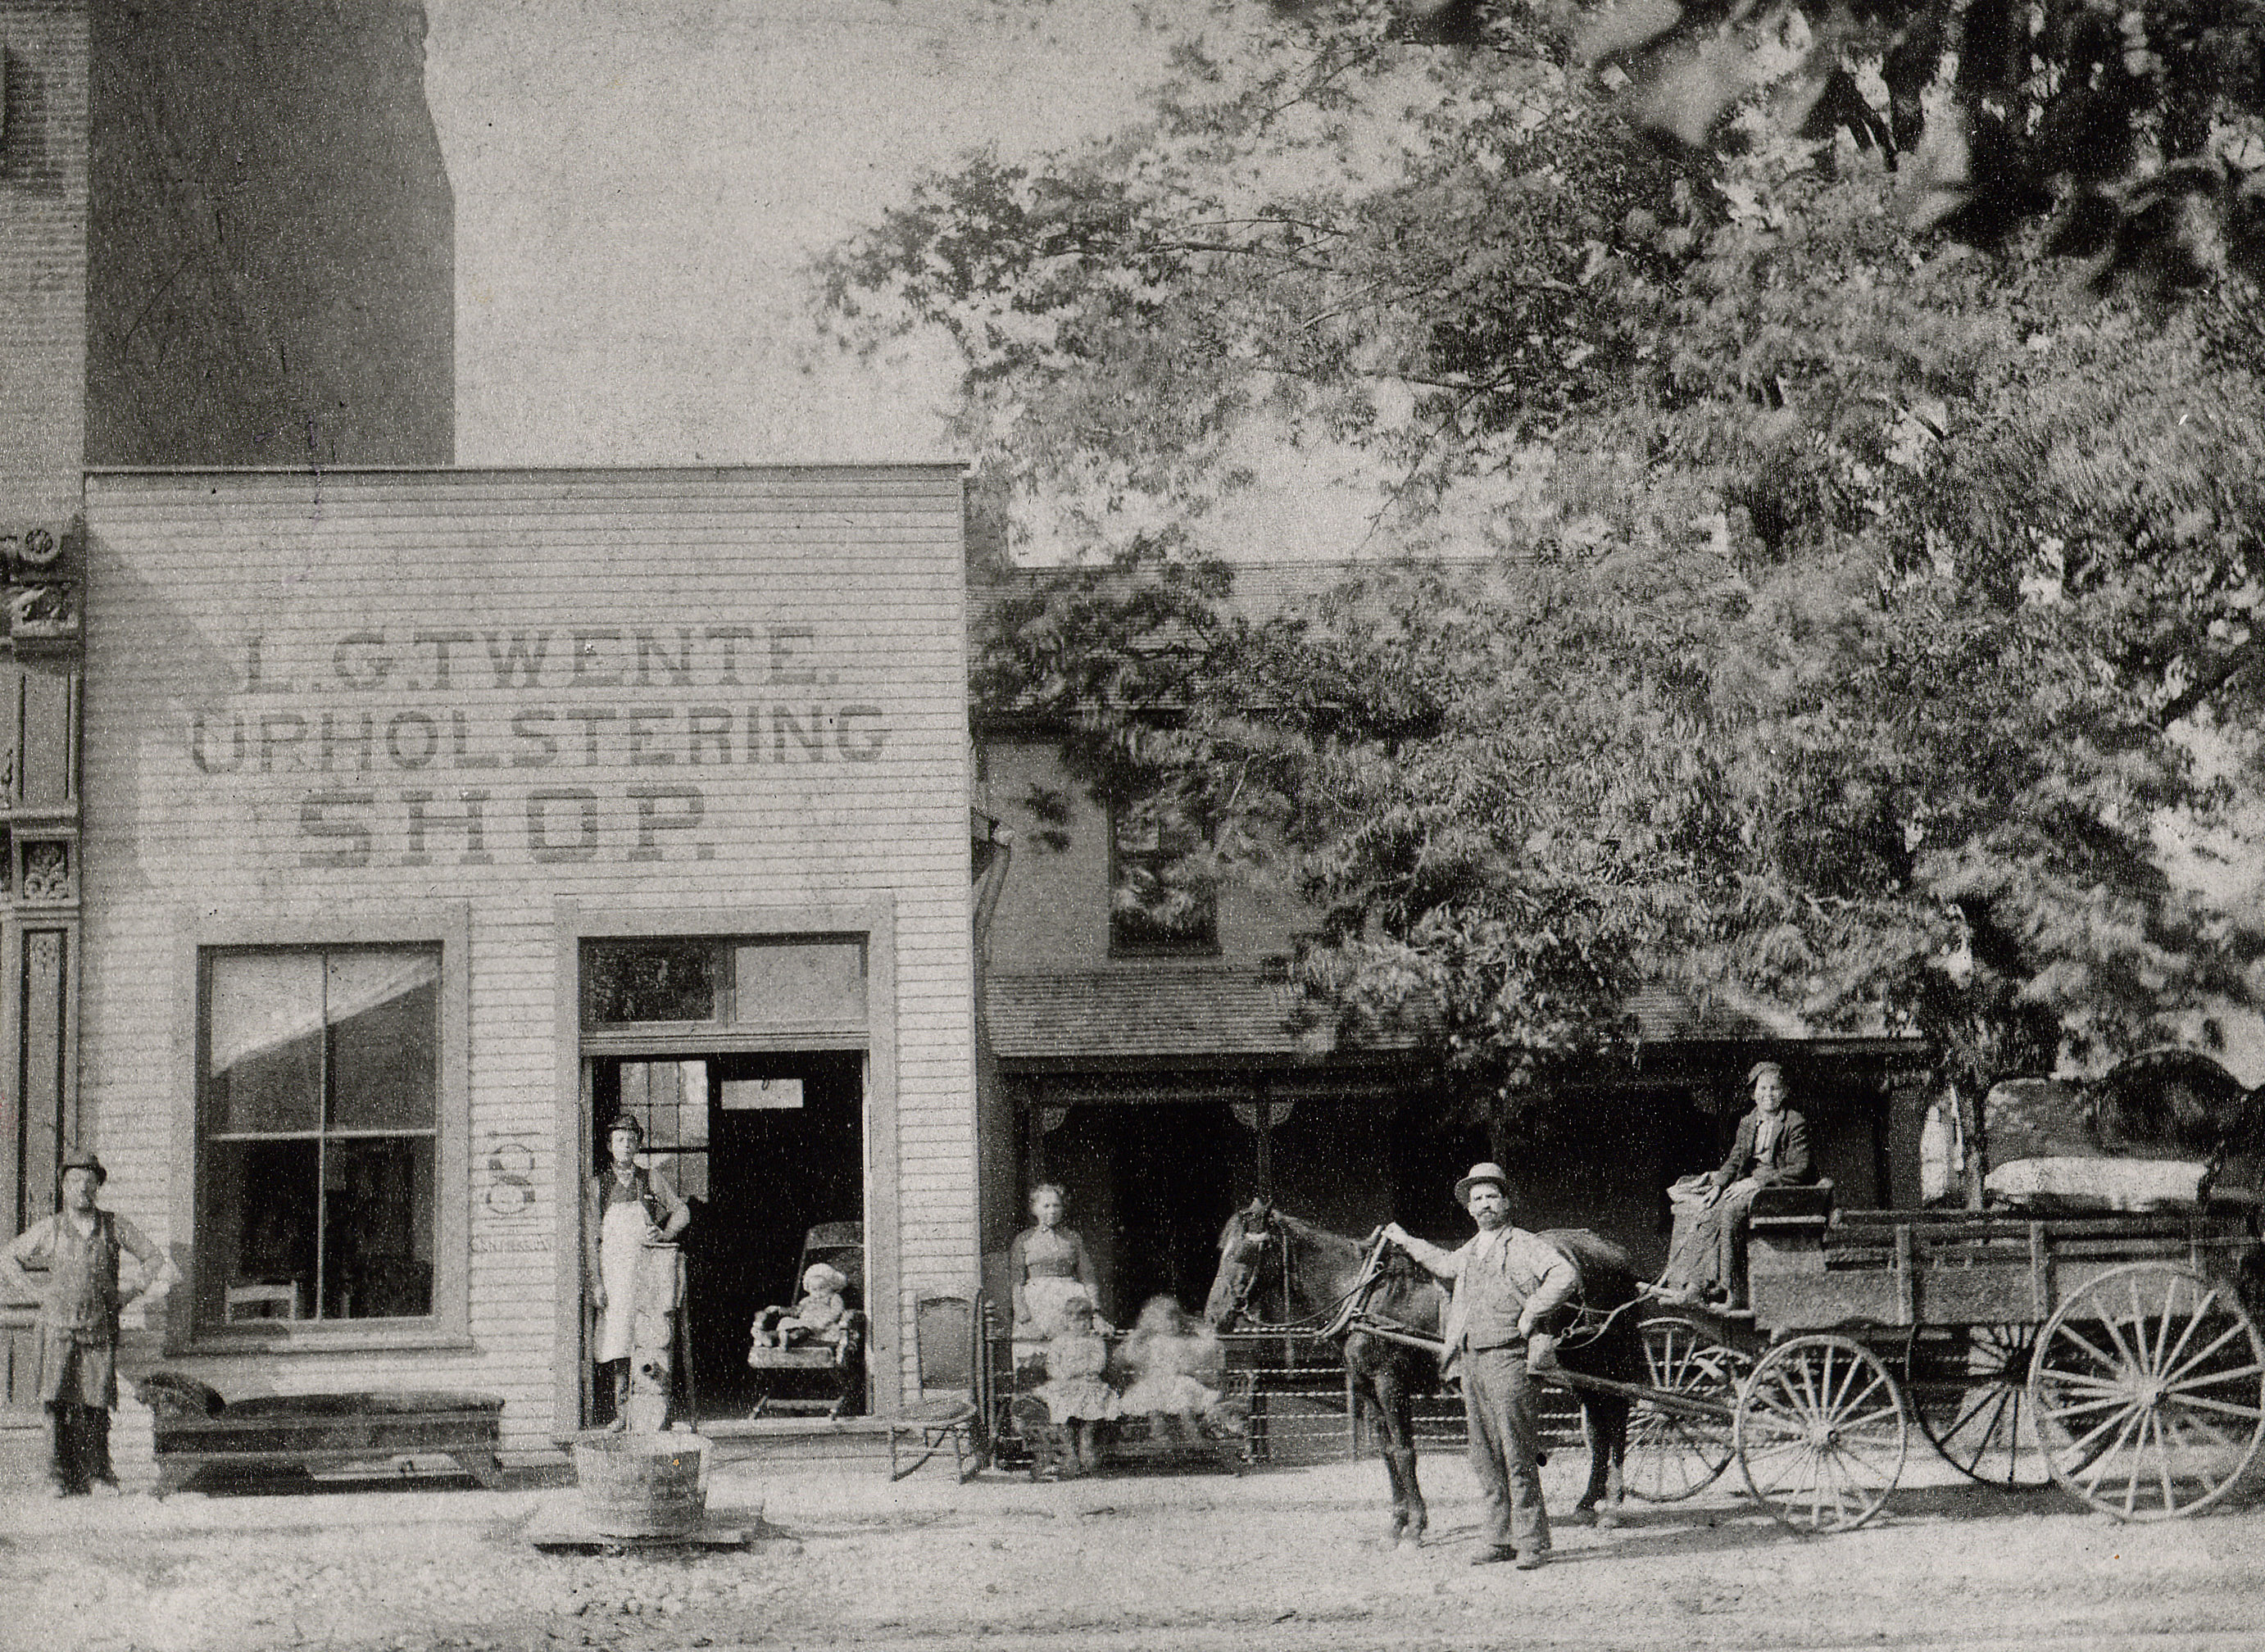 Then & Now: Twente Upholstery Company, 1010 Central Avenue